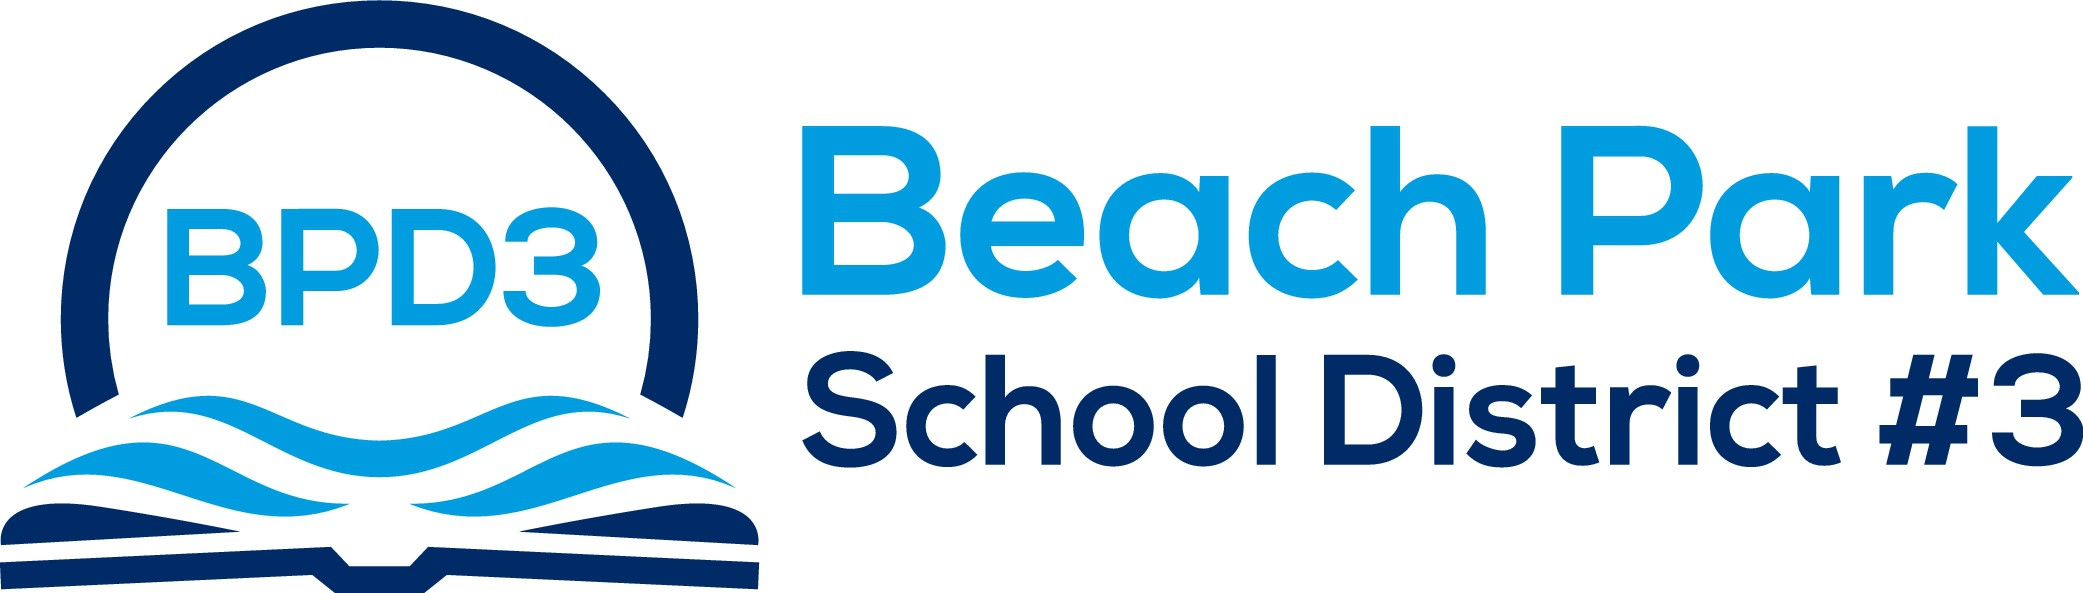 Beach Park School District #3